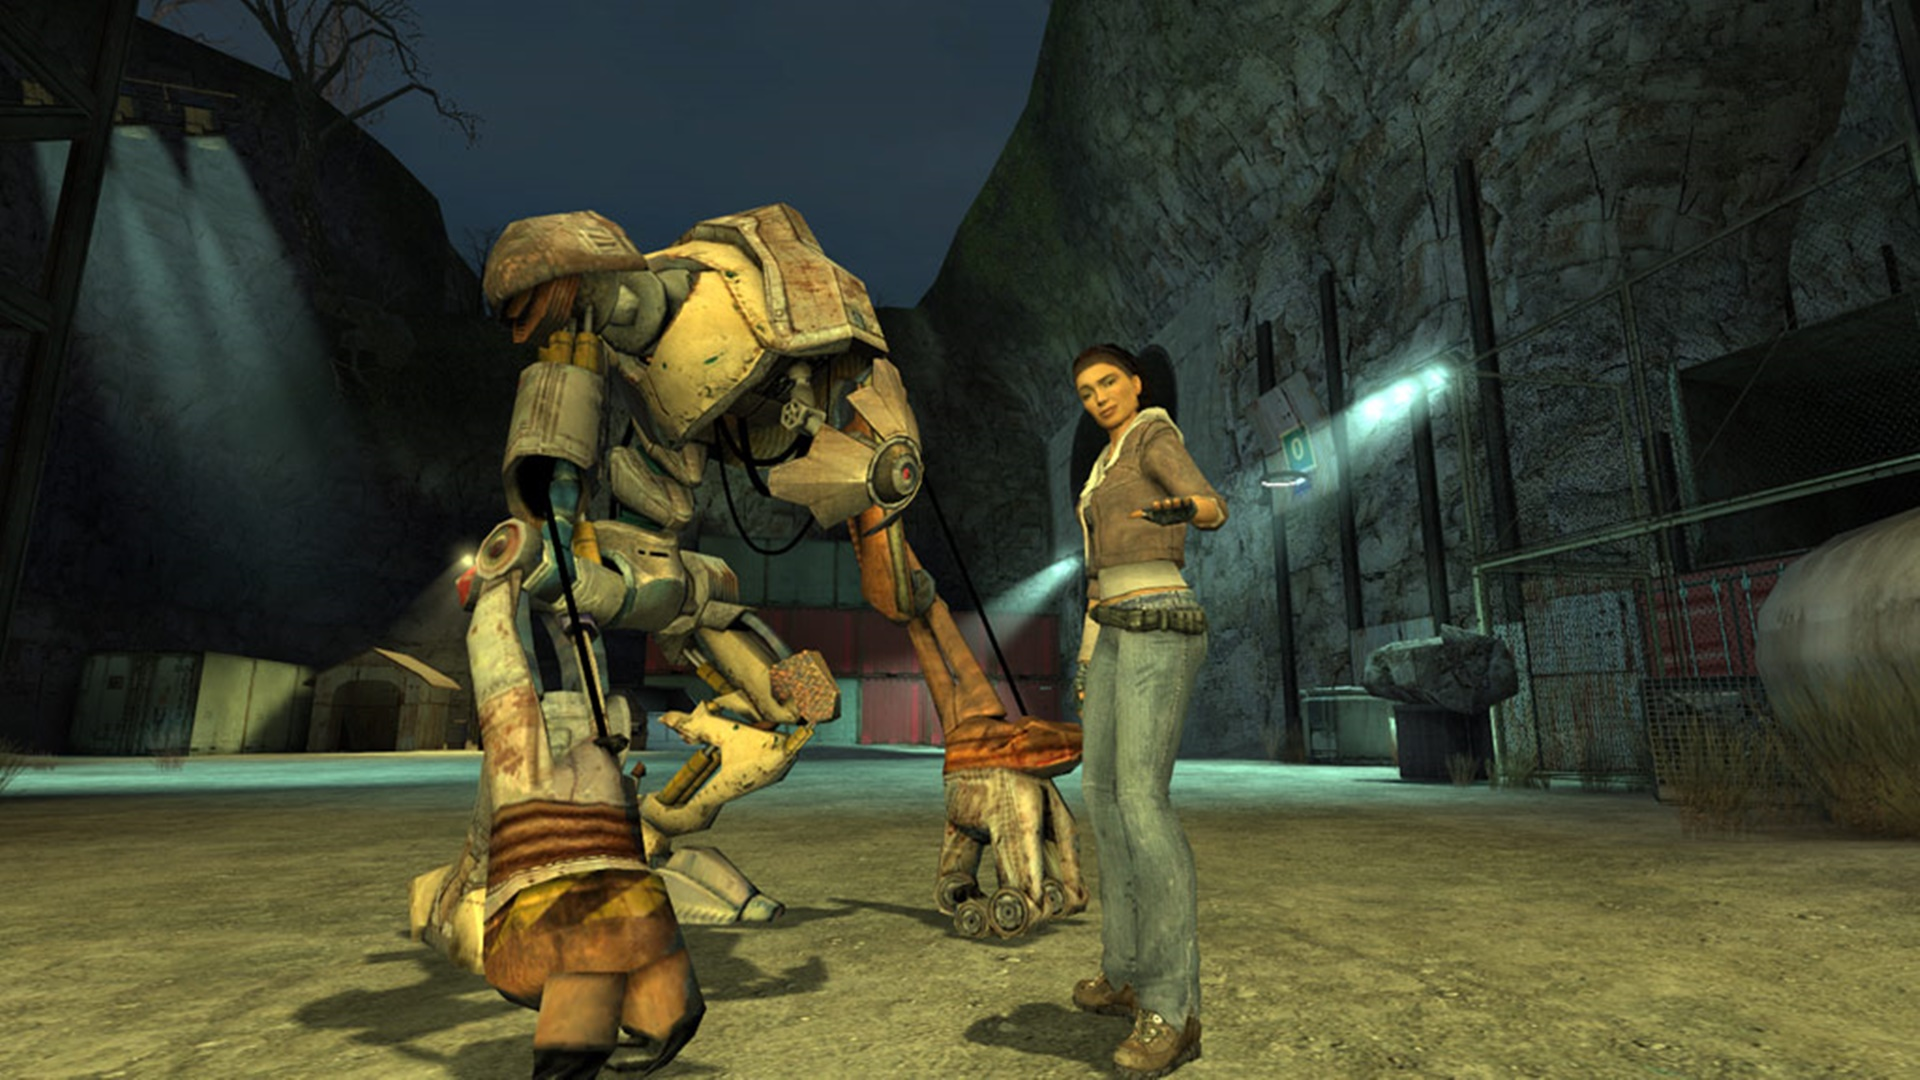 Half-Life 2 speedrunners beat the game backwards in 13 minutes